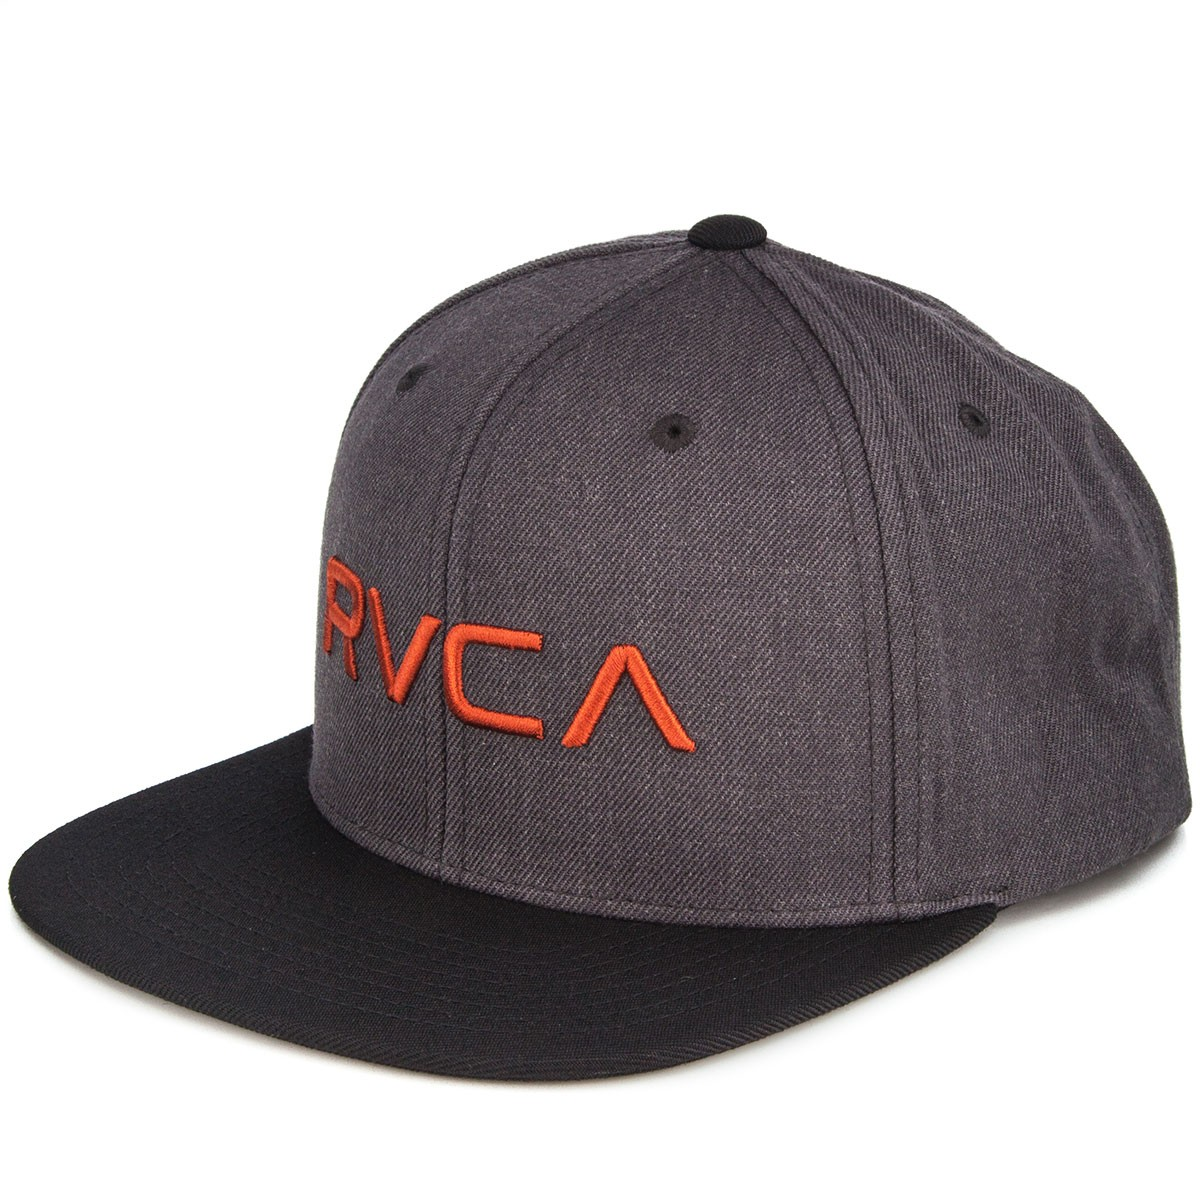 RVCA RVCA Twill Snapback Hat - Dark Charcoal Heather